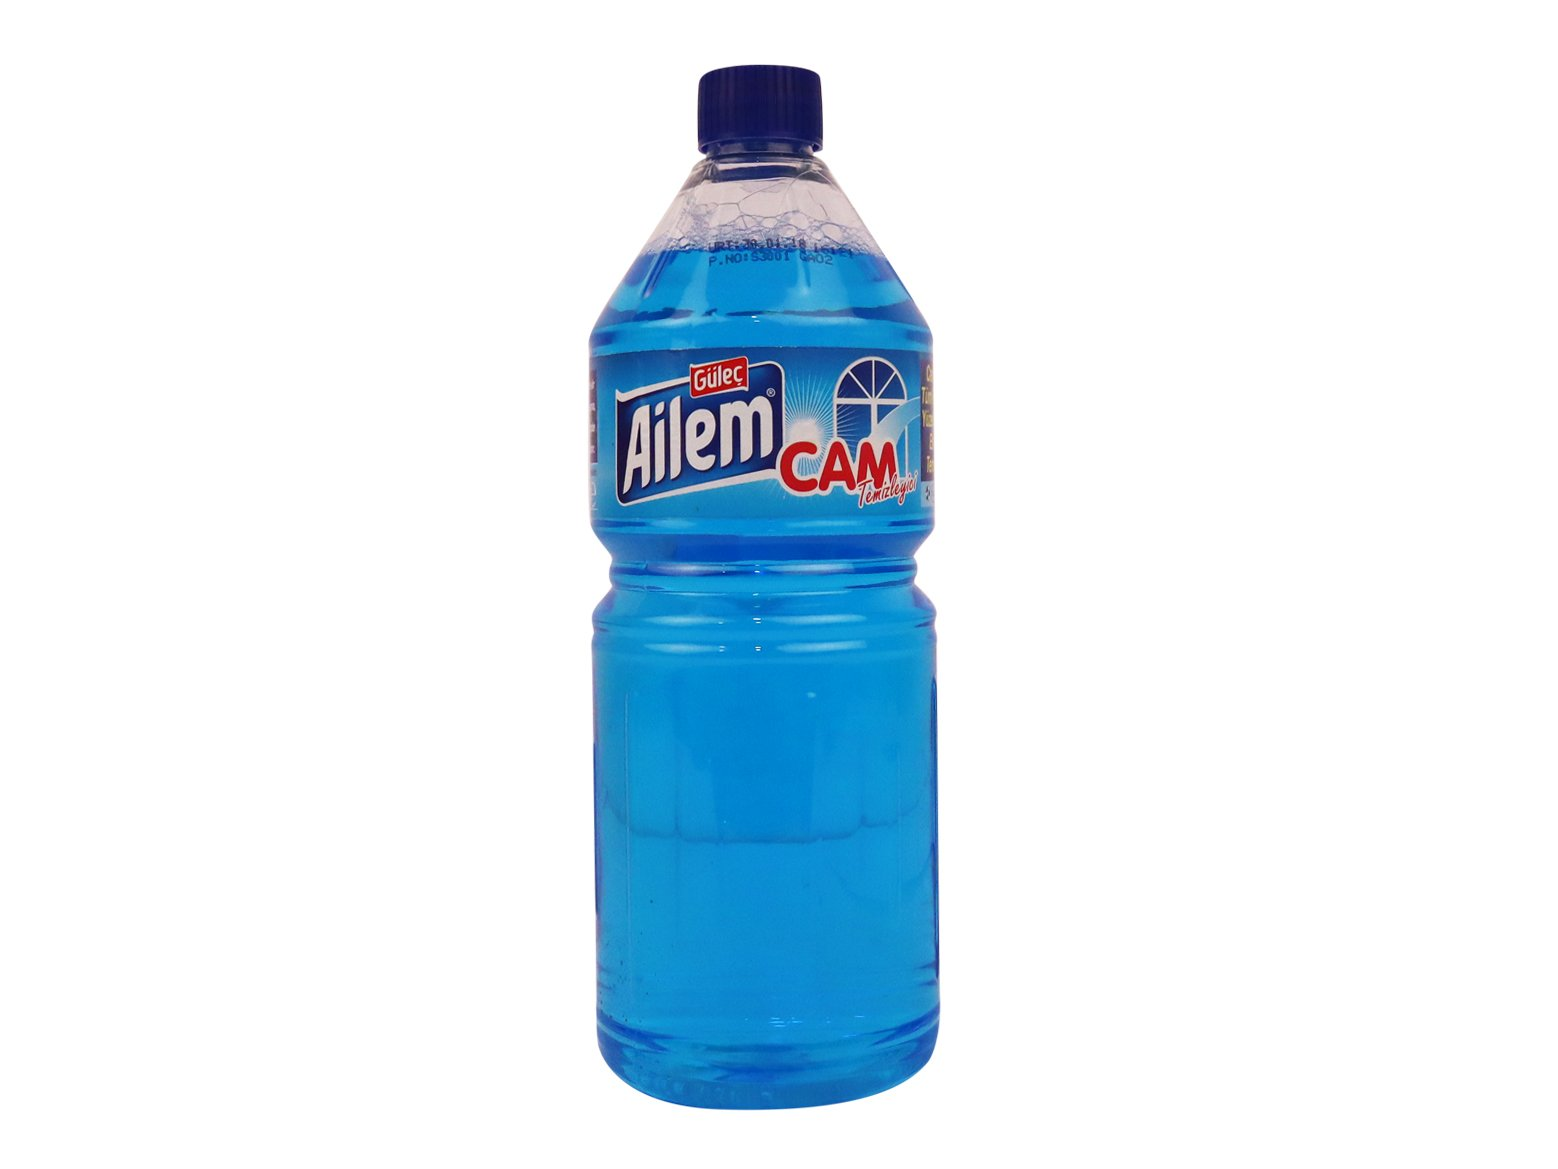 Ailem Cam Sil 1000 ml